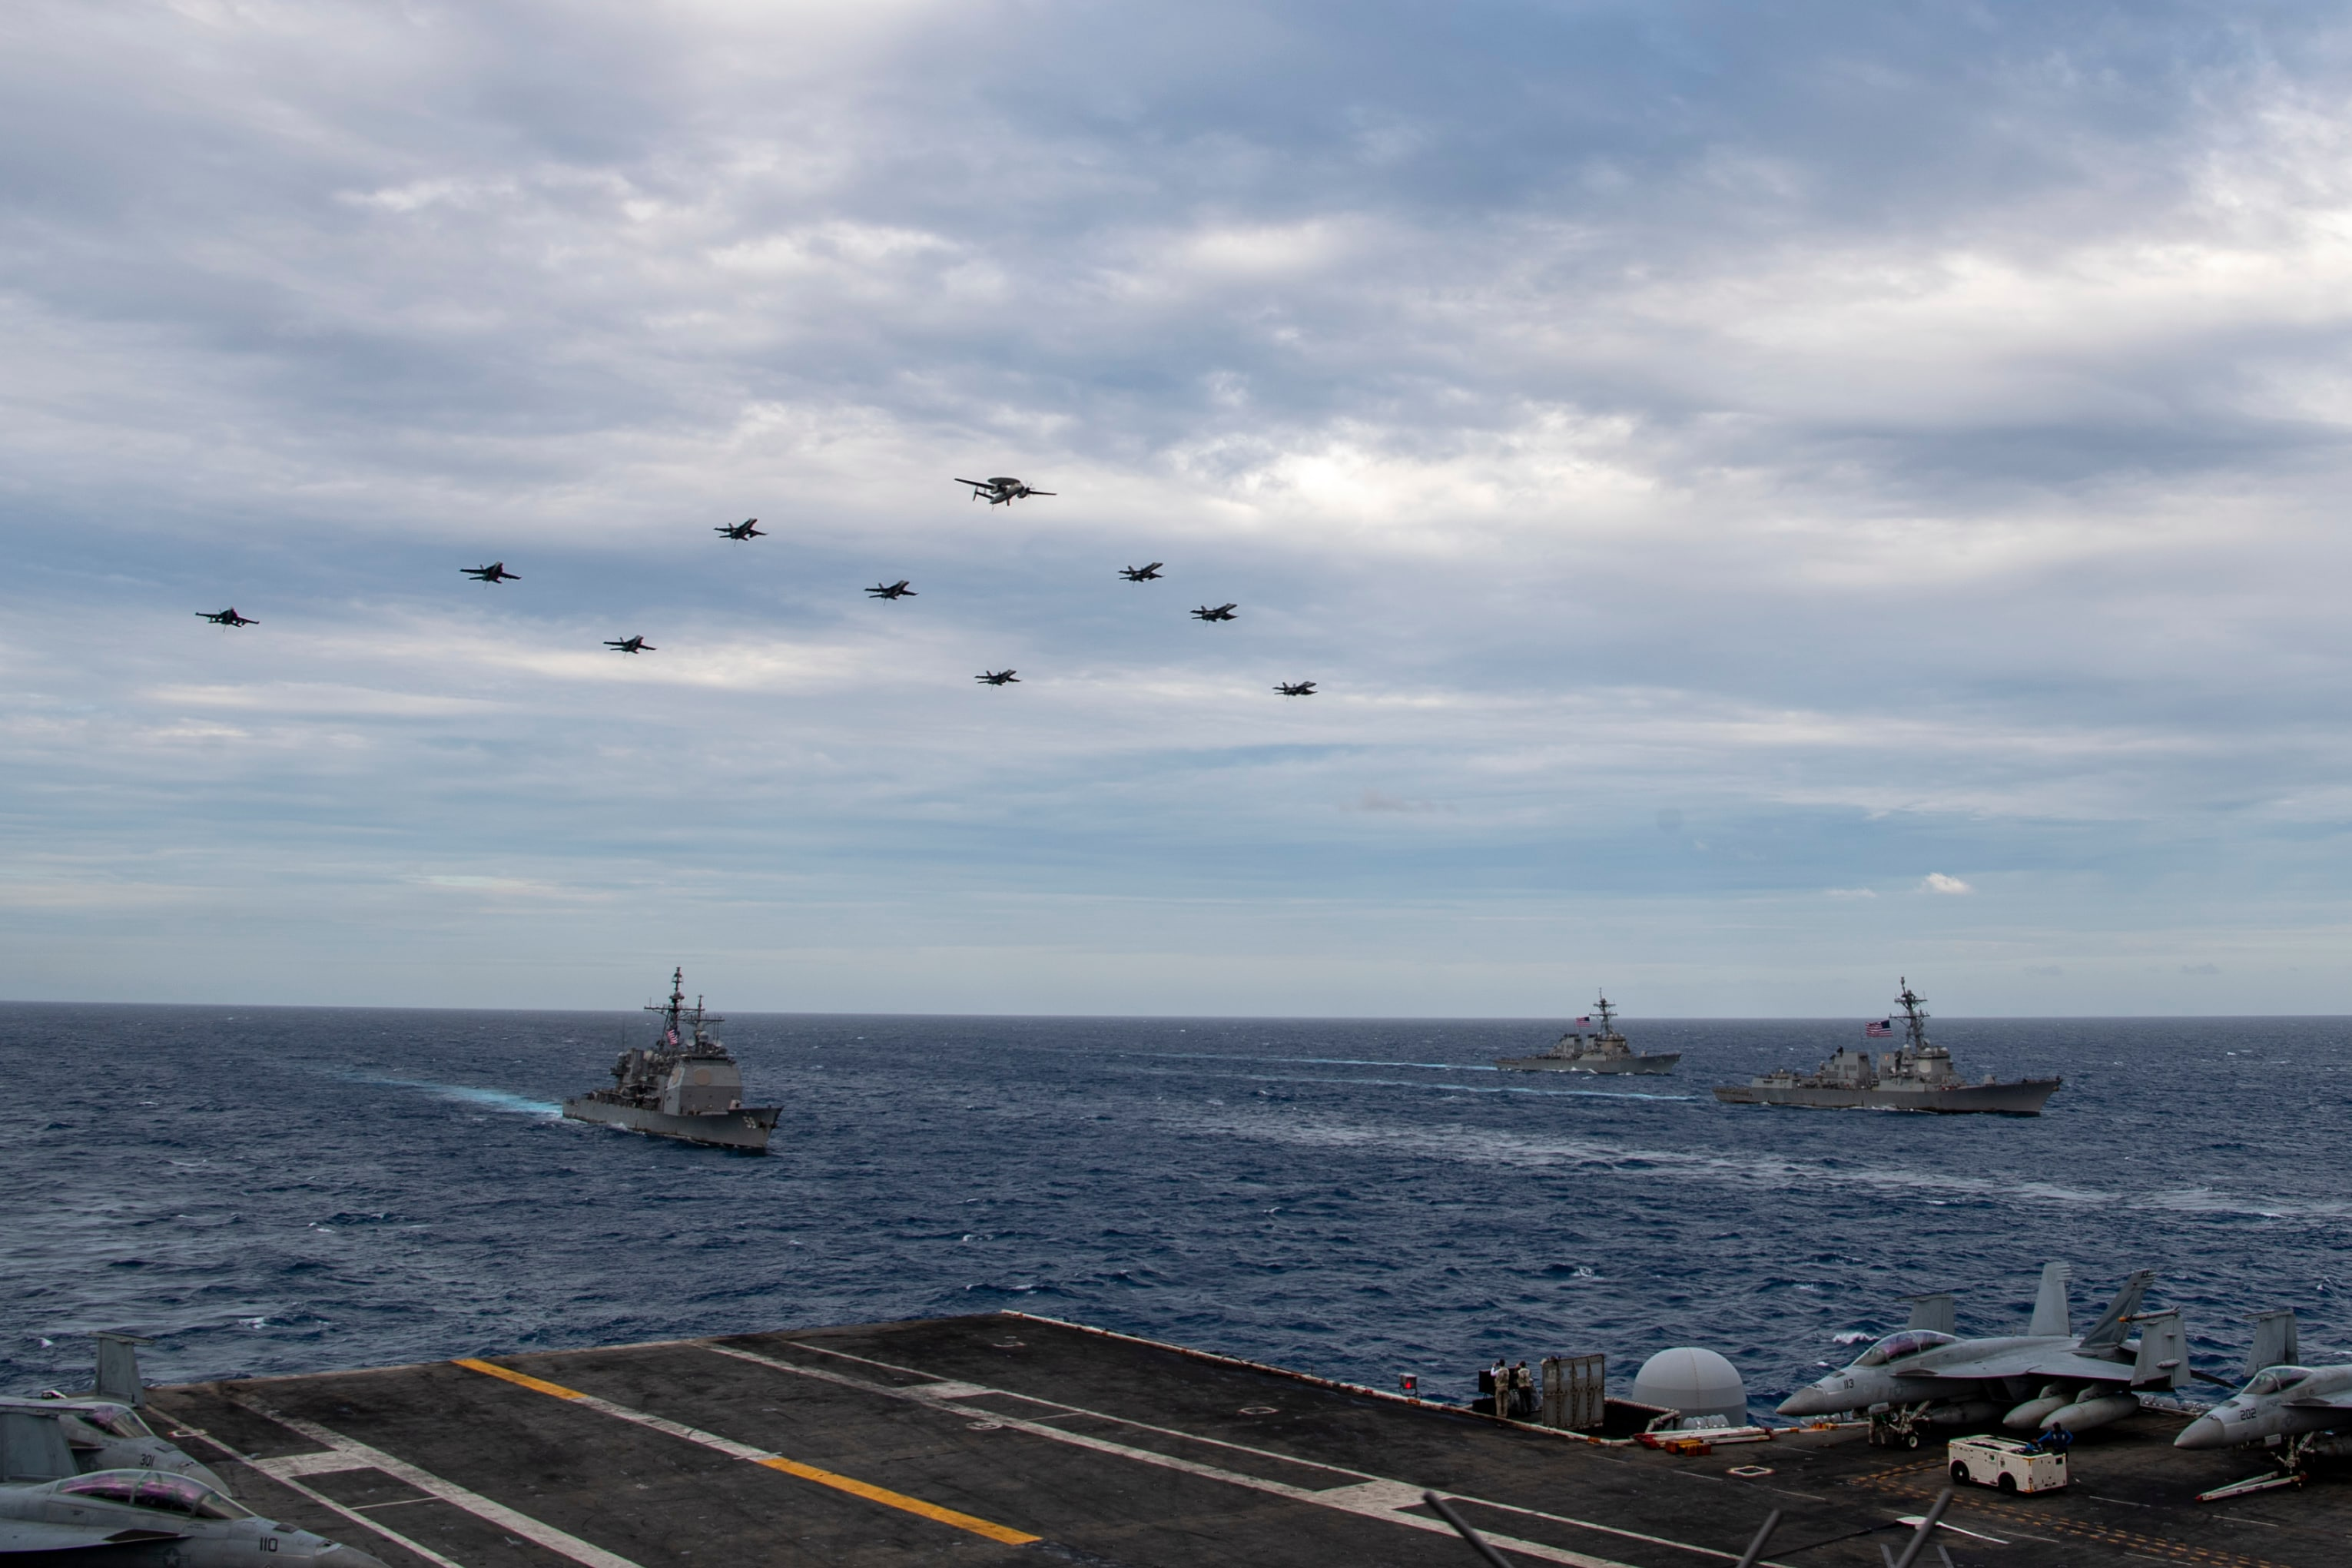 The news of the exercises by the supercarriers in China's neighbourhood came a day after US President Joe Biden, in his conversation with Prime Minister Narendra Modi, made a pointed reference to the Quadrilateral Security Dialogue, the strategic dialogue between India, USA, Japan and Australia that mostly focuses on Beijing.